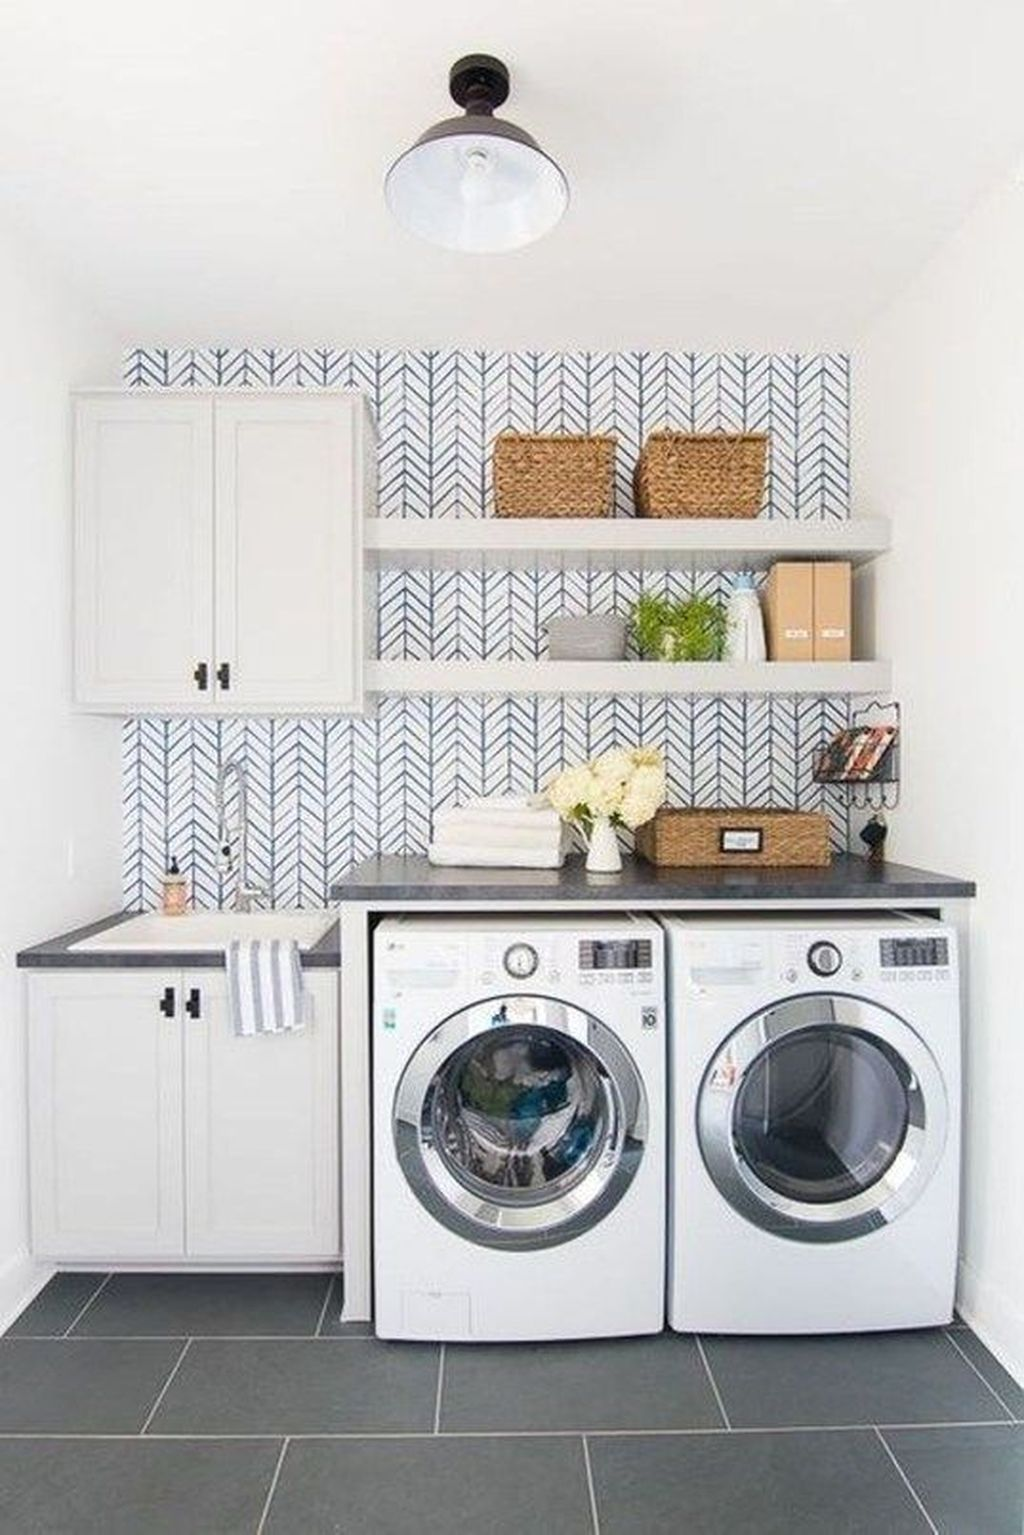 Inspiring Small Laundry Room Design And Decor Ideas 03